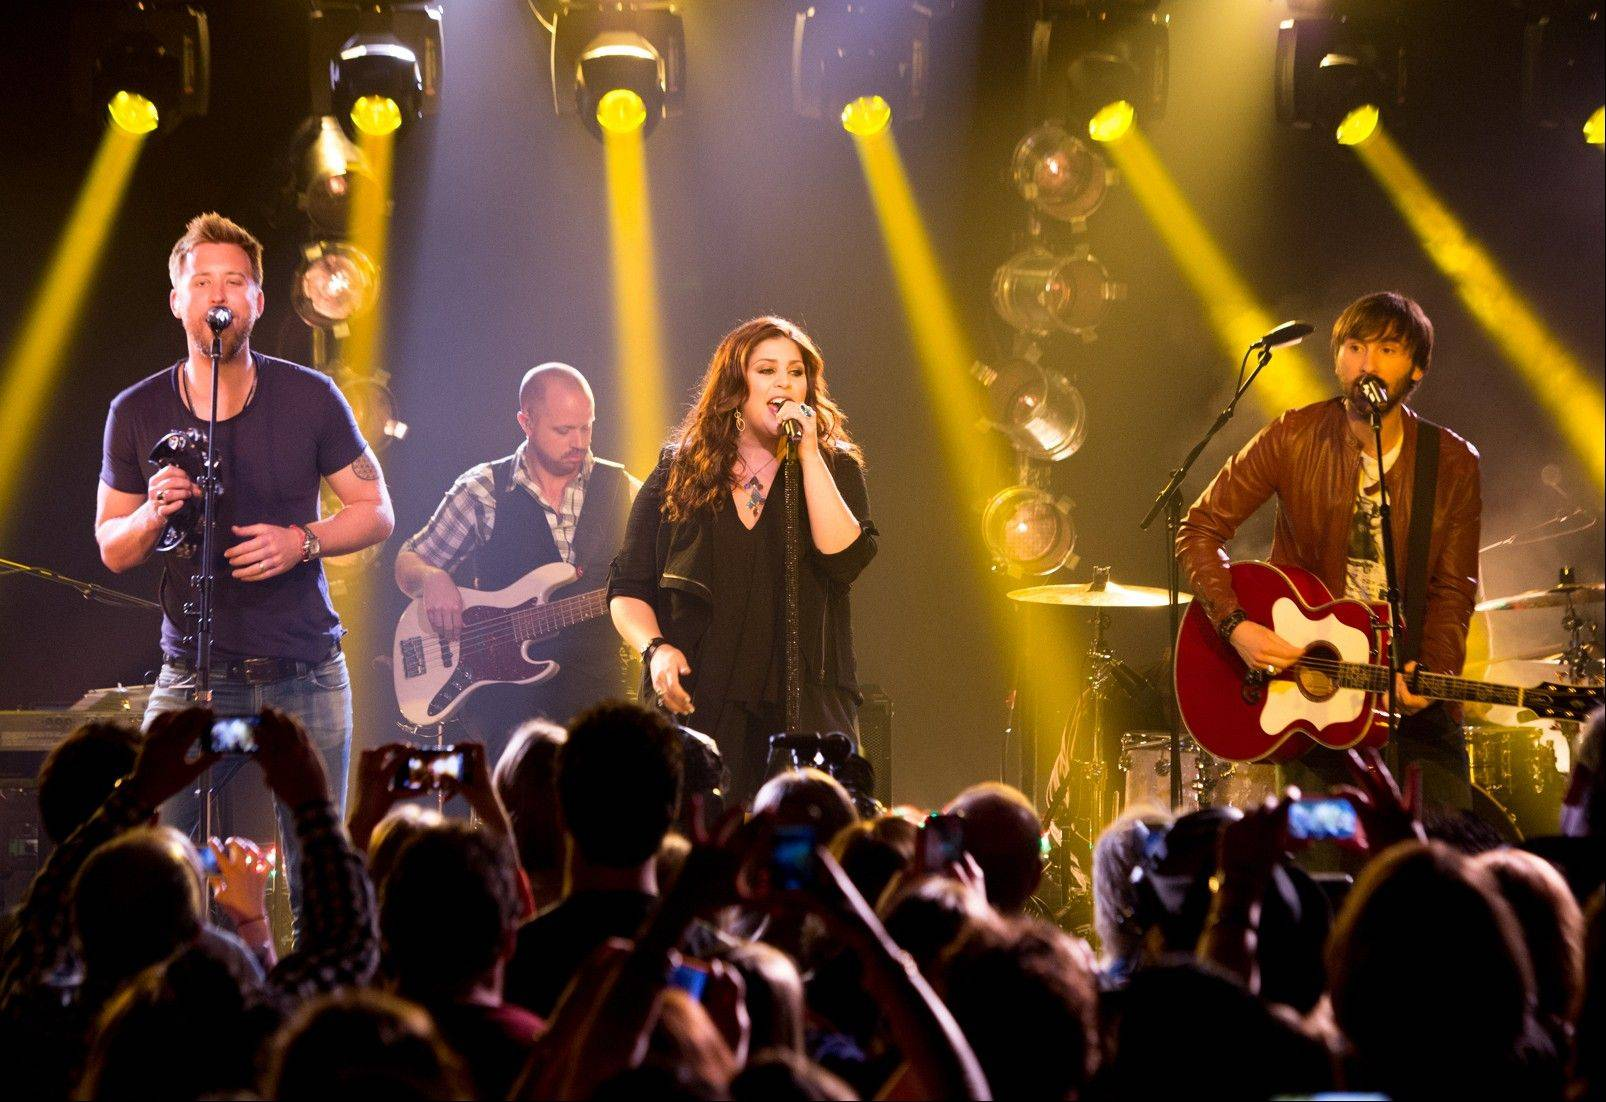 This May 8, 2013 file photo released by iHeartRadio shows members of the band Lady Antebellum, from left, Charles Kelley, Hillary Scott, and Dave Haywood during a performance in New York. Lady Antebellum is postponing the start of its 60-date concert tour. The Nashville, Tenn.-based country music trio says it will now begin the 60-plus city tour Jan. 10 in Peoria. Lady A had been scheduled to start the tour Nov. 8 in Omaha, Neb., and 17 shows will be rescheduled.